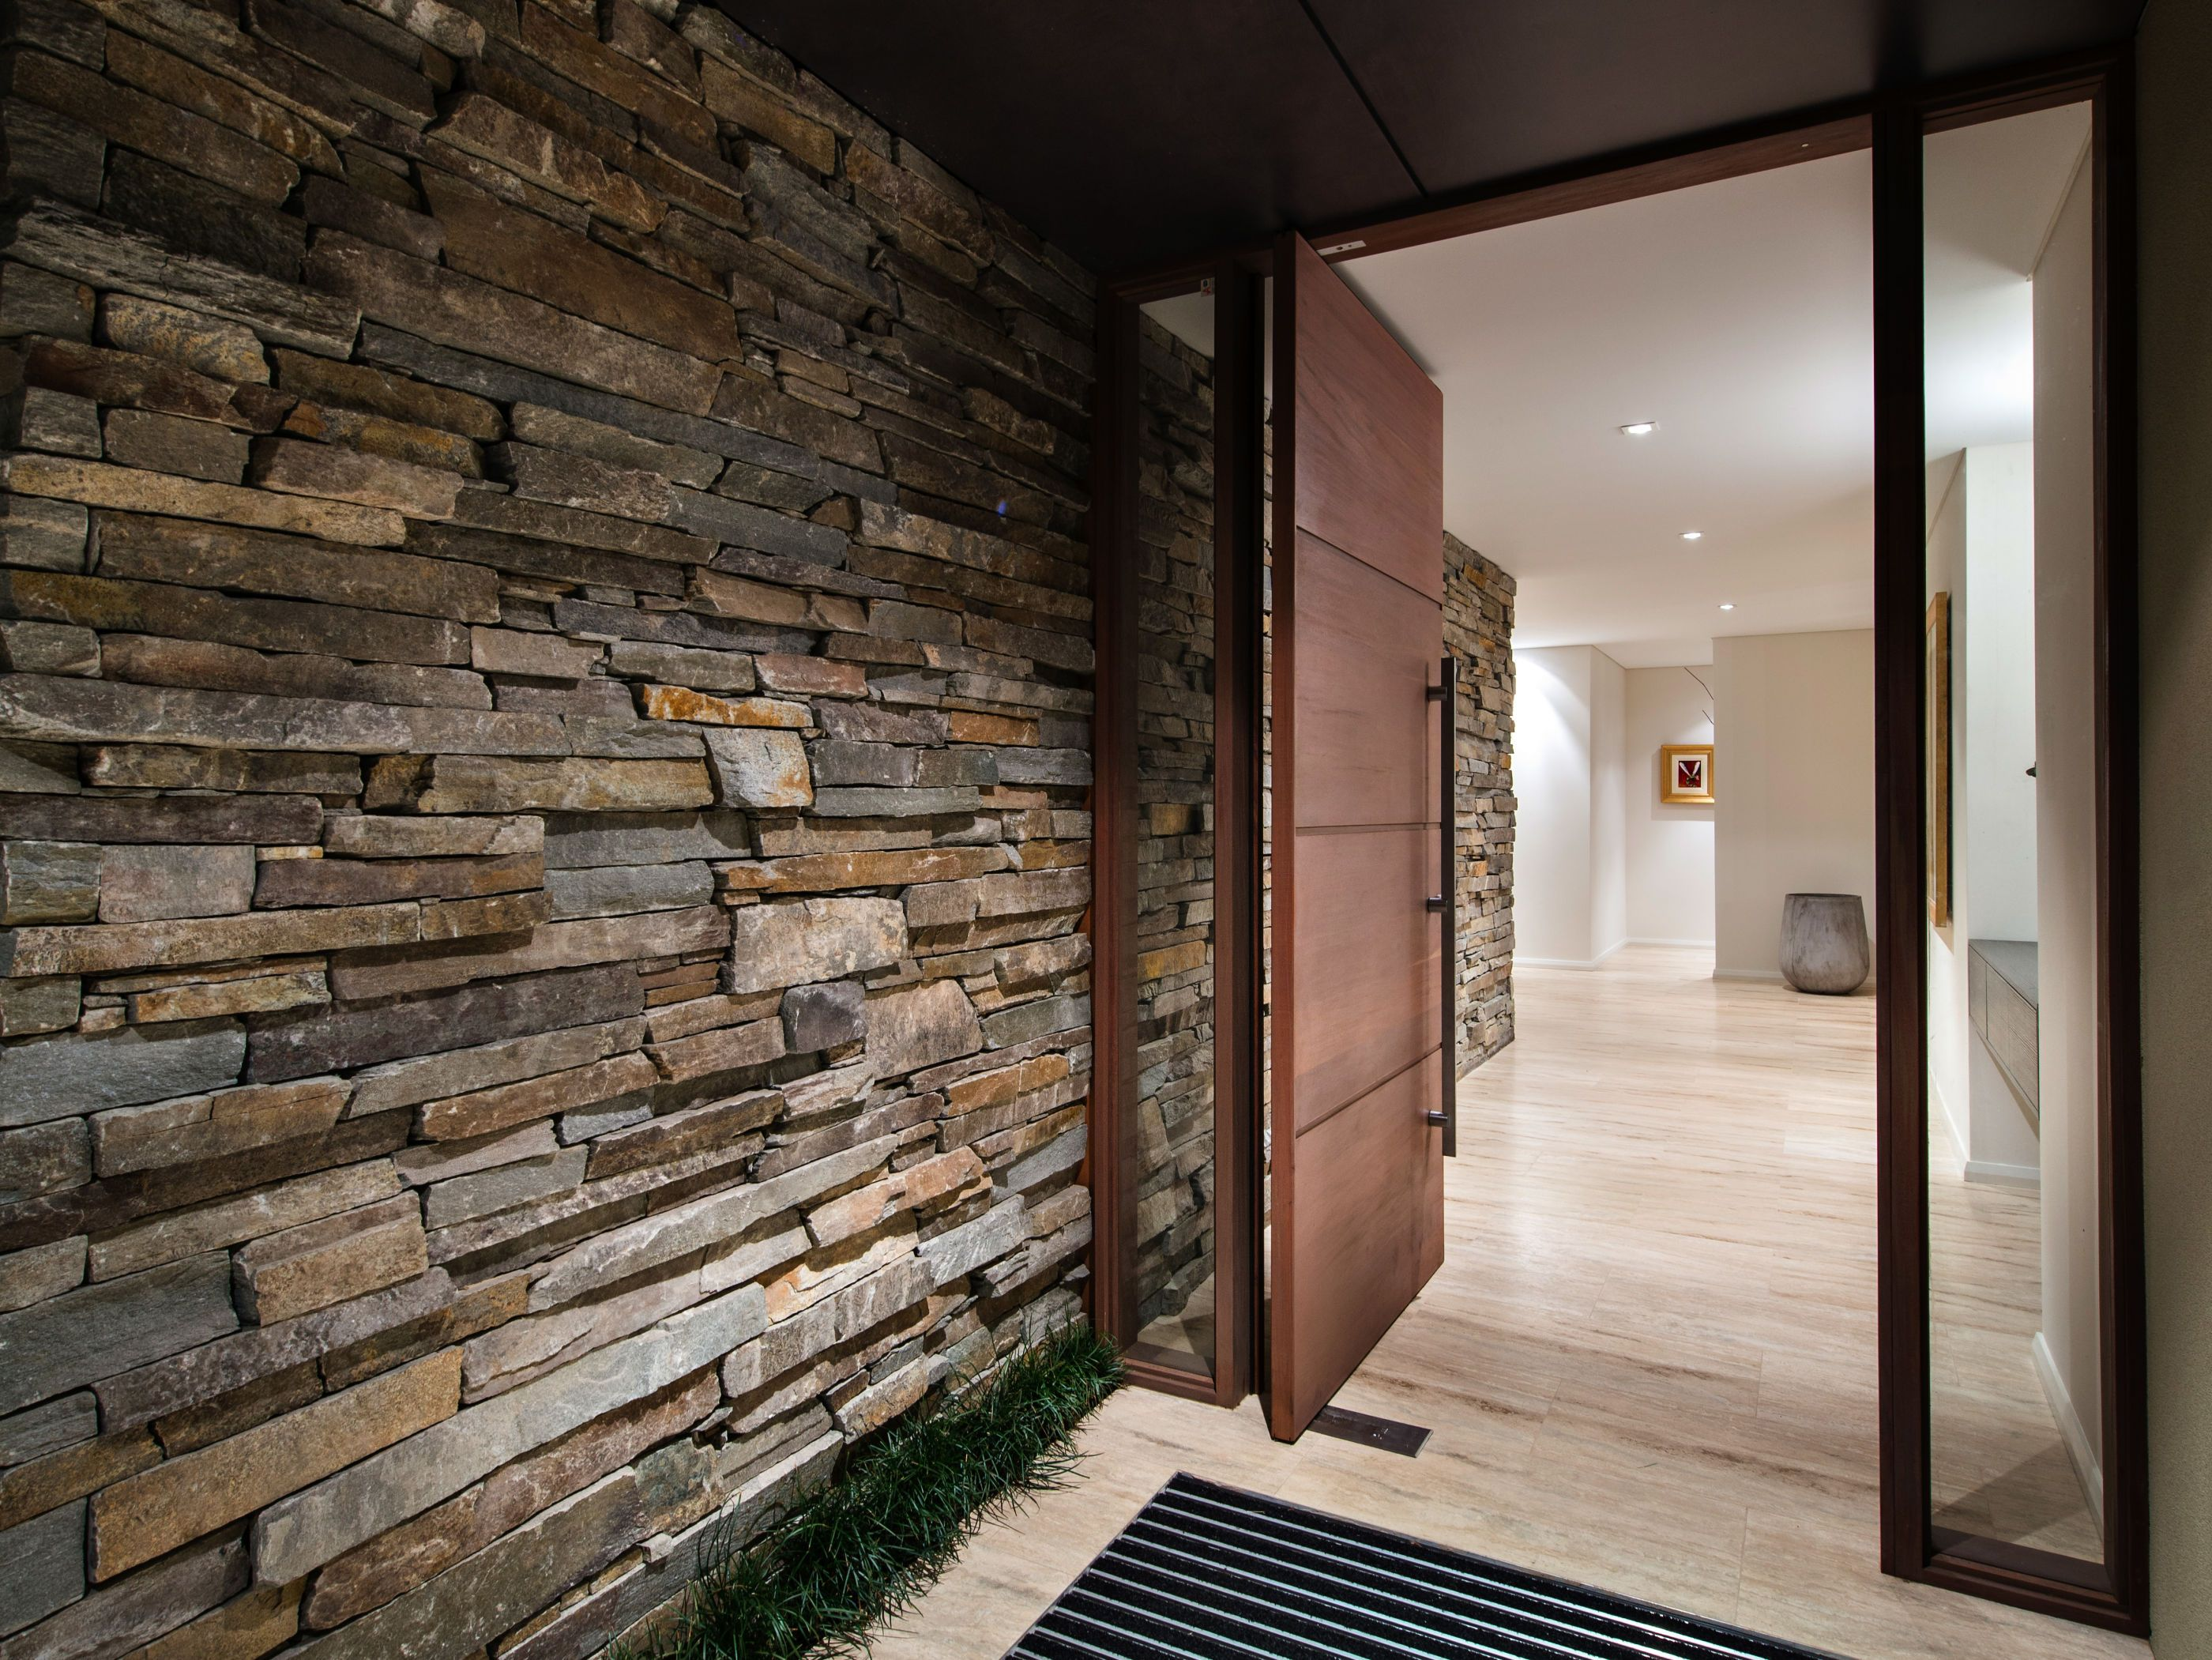 Baw Baw Dry Stone Wall Cladding Veneers By With Images Stone Wall Cladding Stone Cladding Exterior Wall Cladding